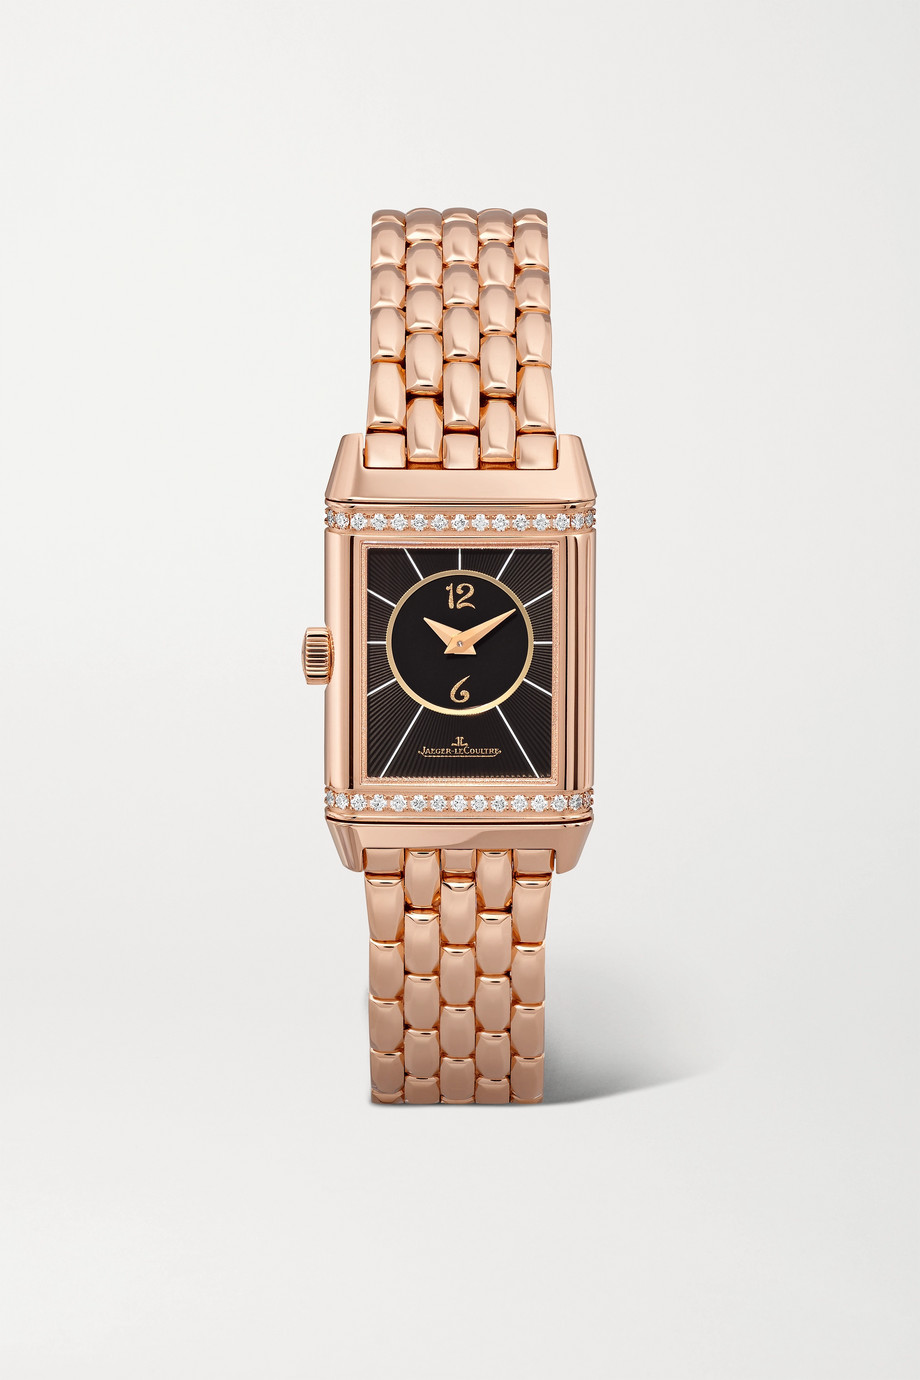 Jaeger-LeCoultre Reverso Classic Duetto small 21mm rose gold and diamond watch